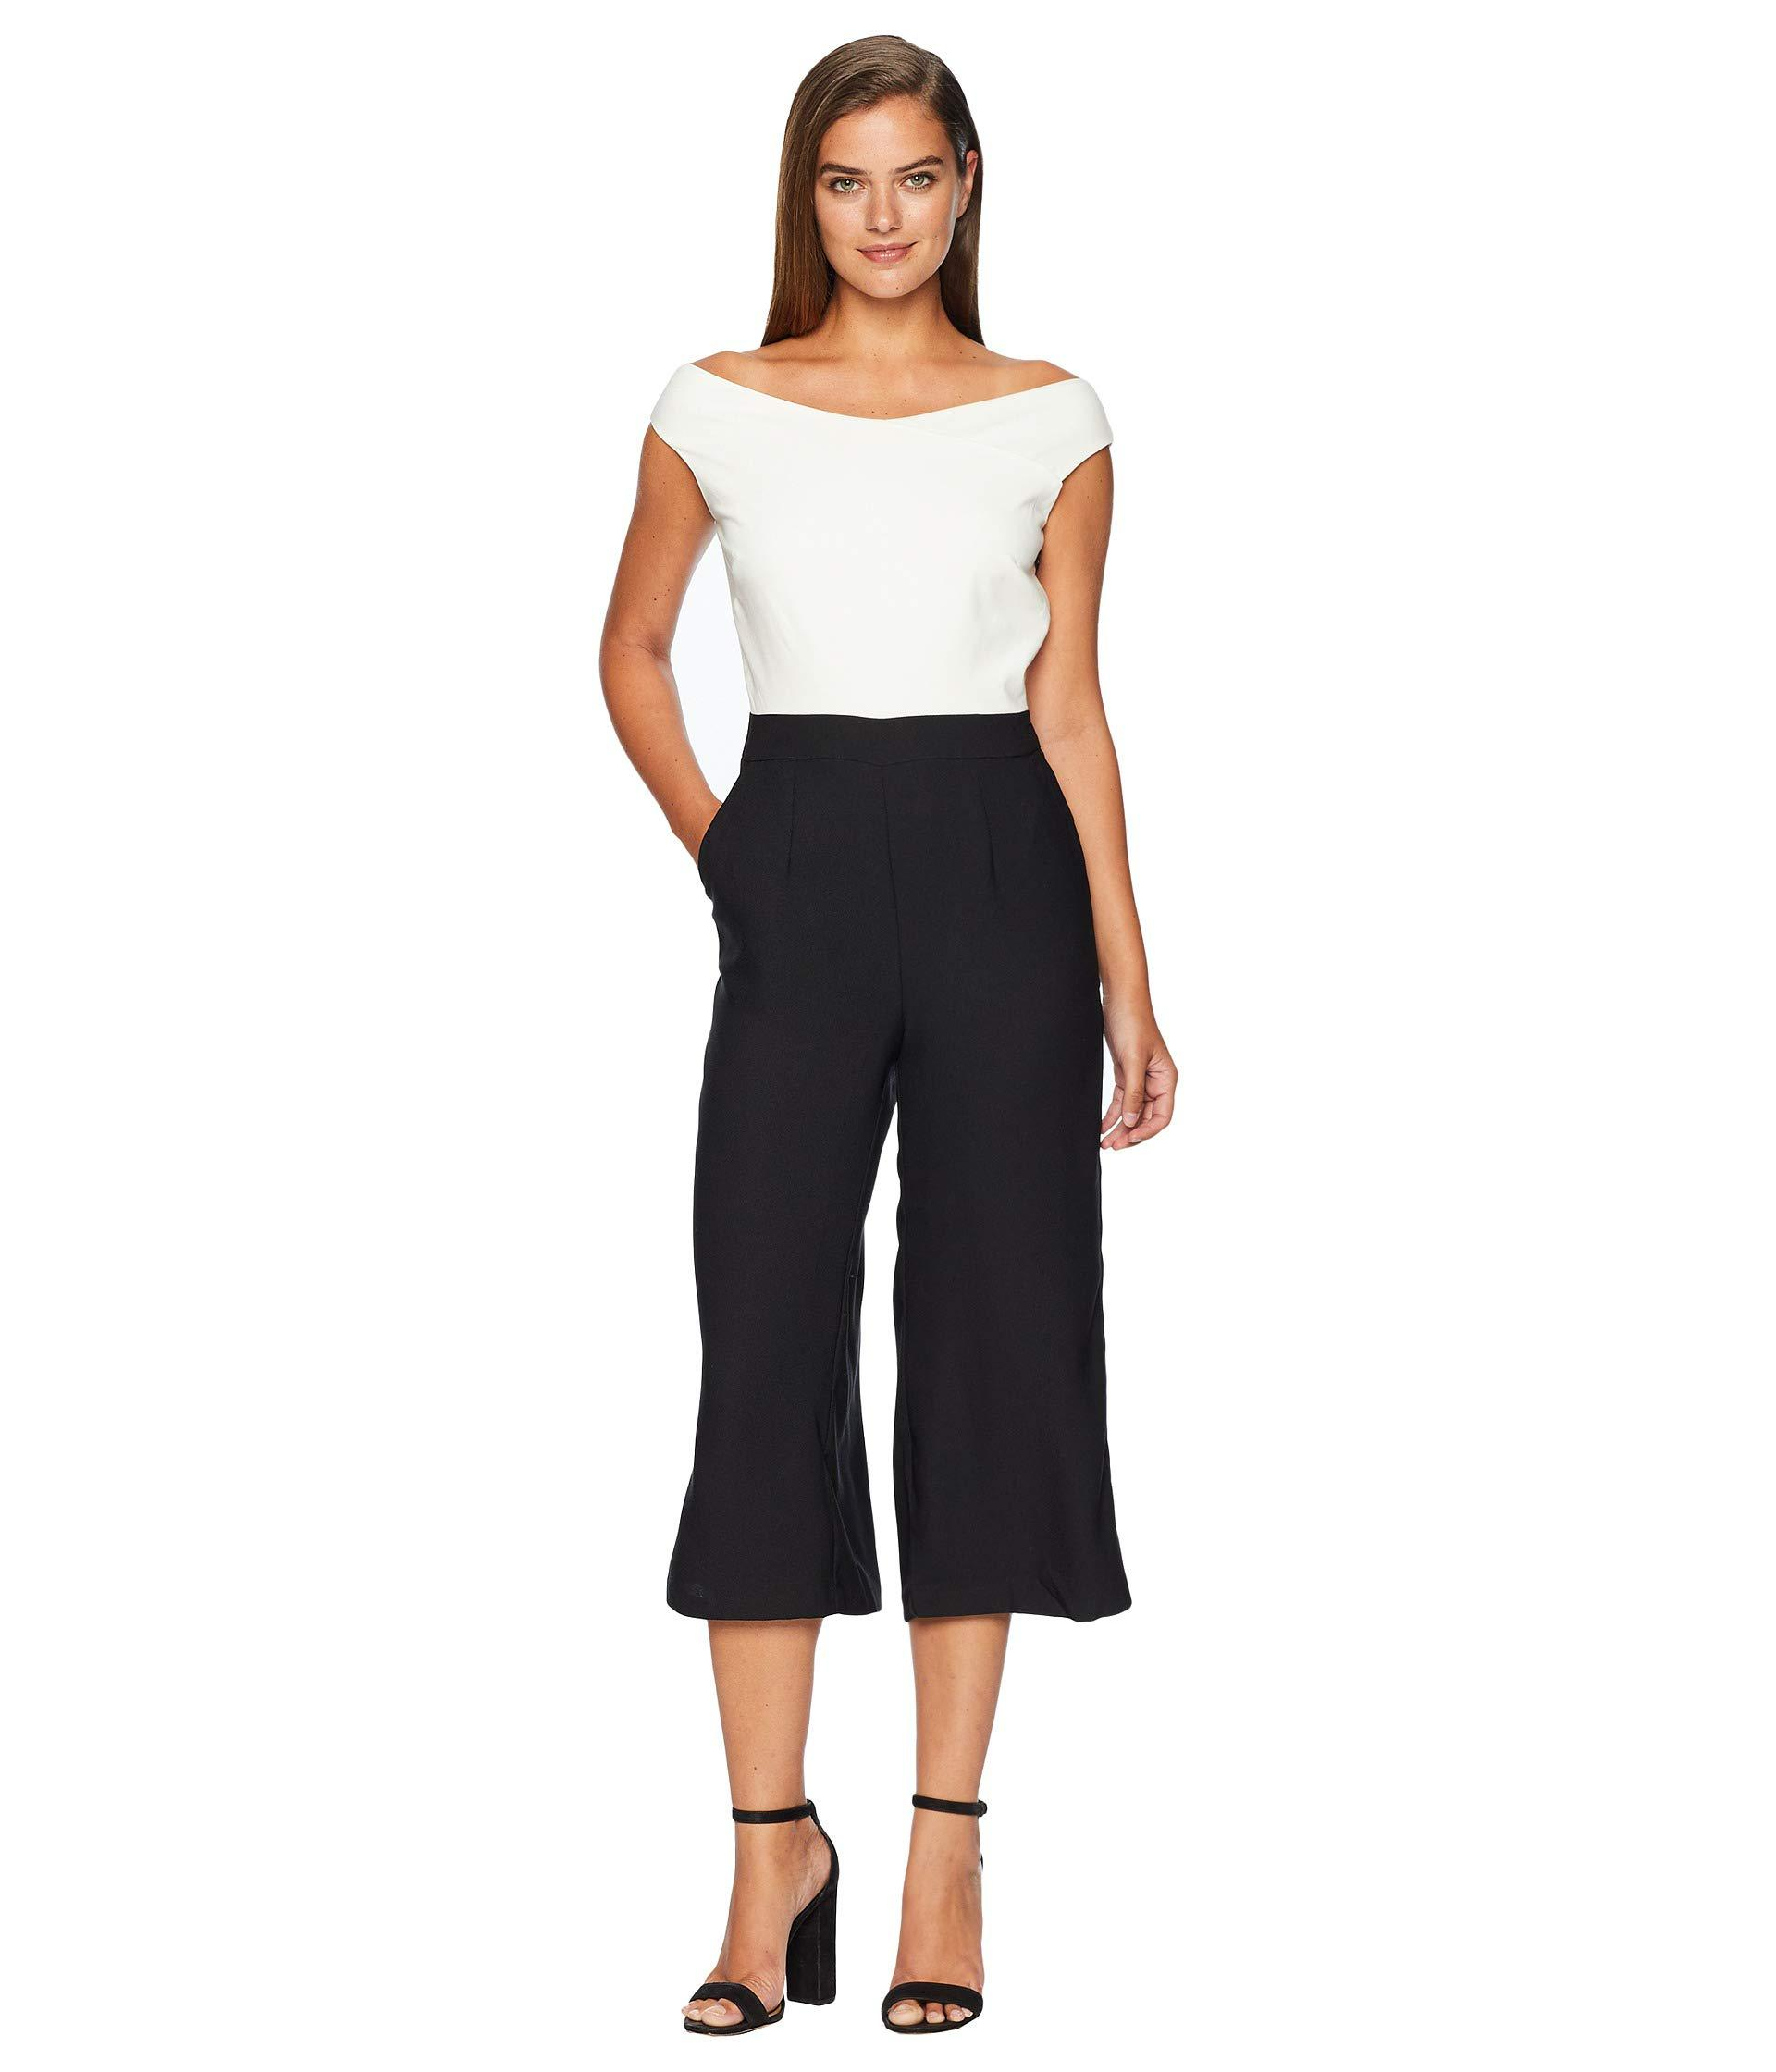 62996114afc476 Catherine Malandrino. Women s Black Off The Shoulder Cropped Jumpsuit